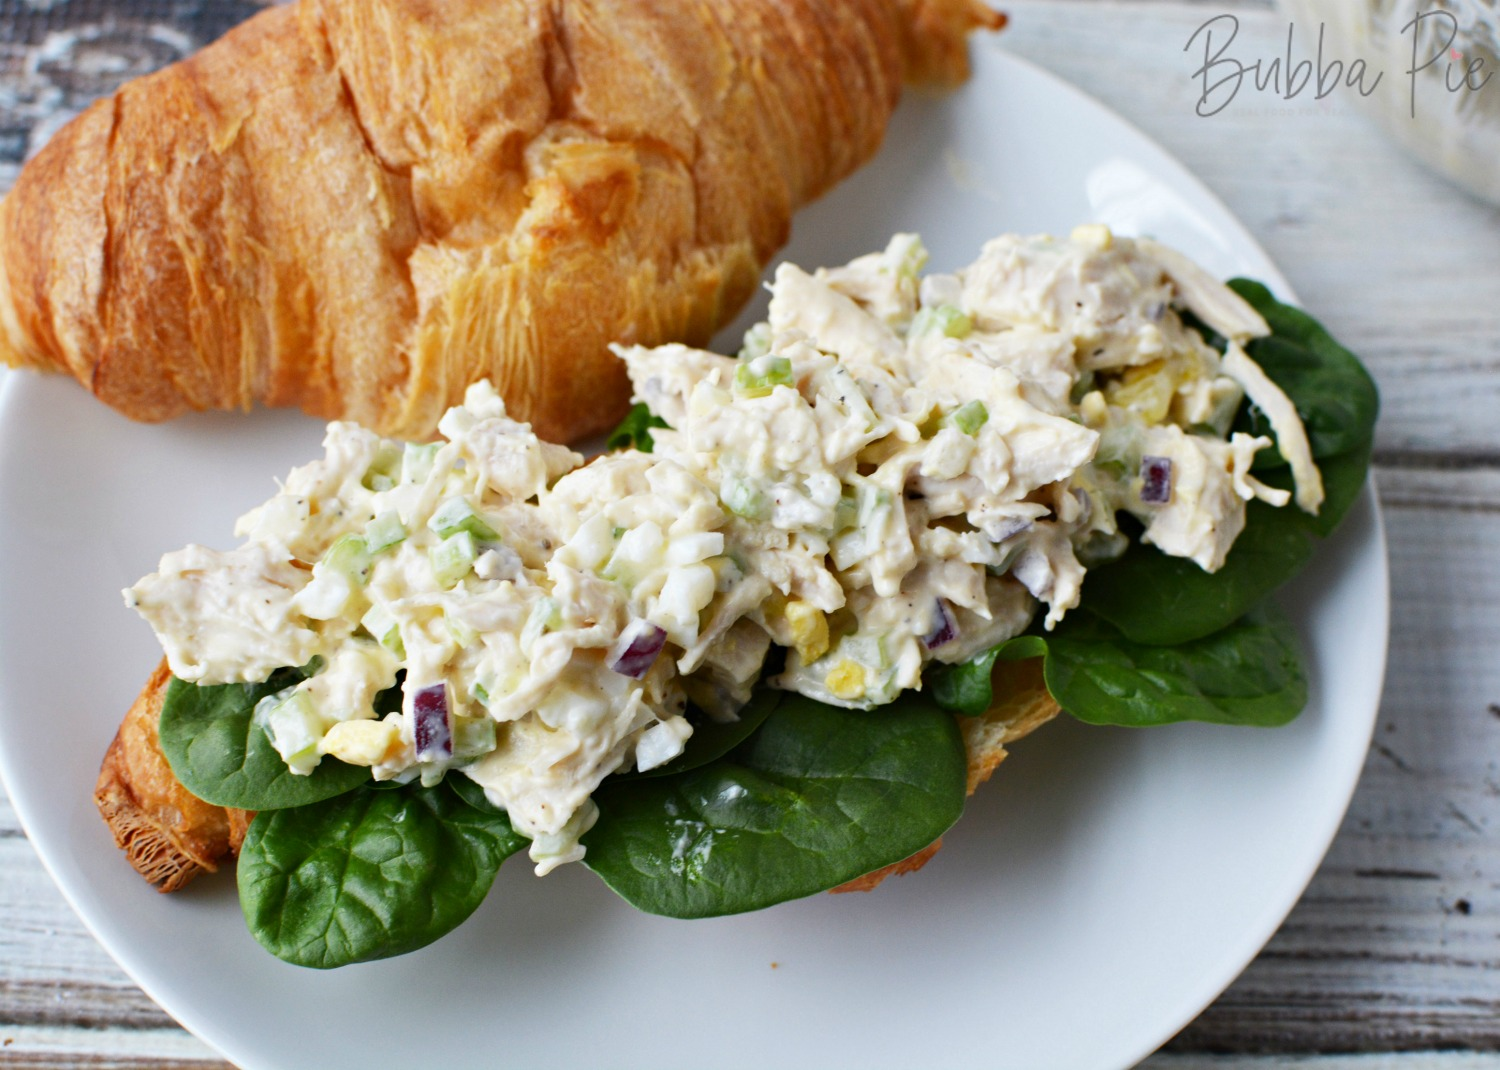 Southern Style Chicken Salad has mayonnaise, onions and egg in it